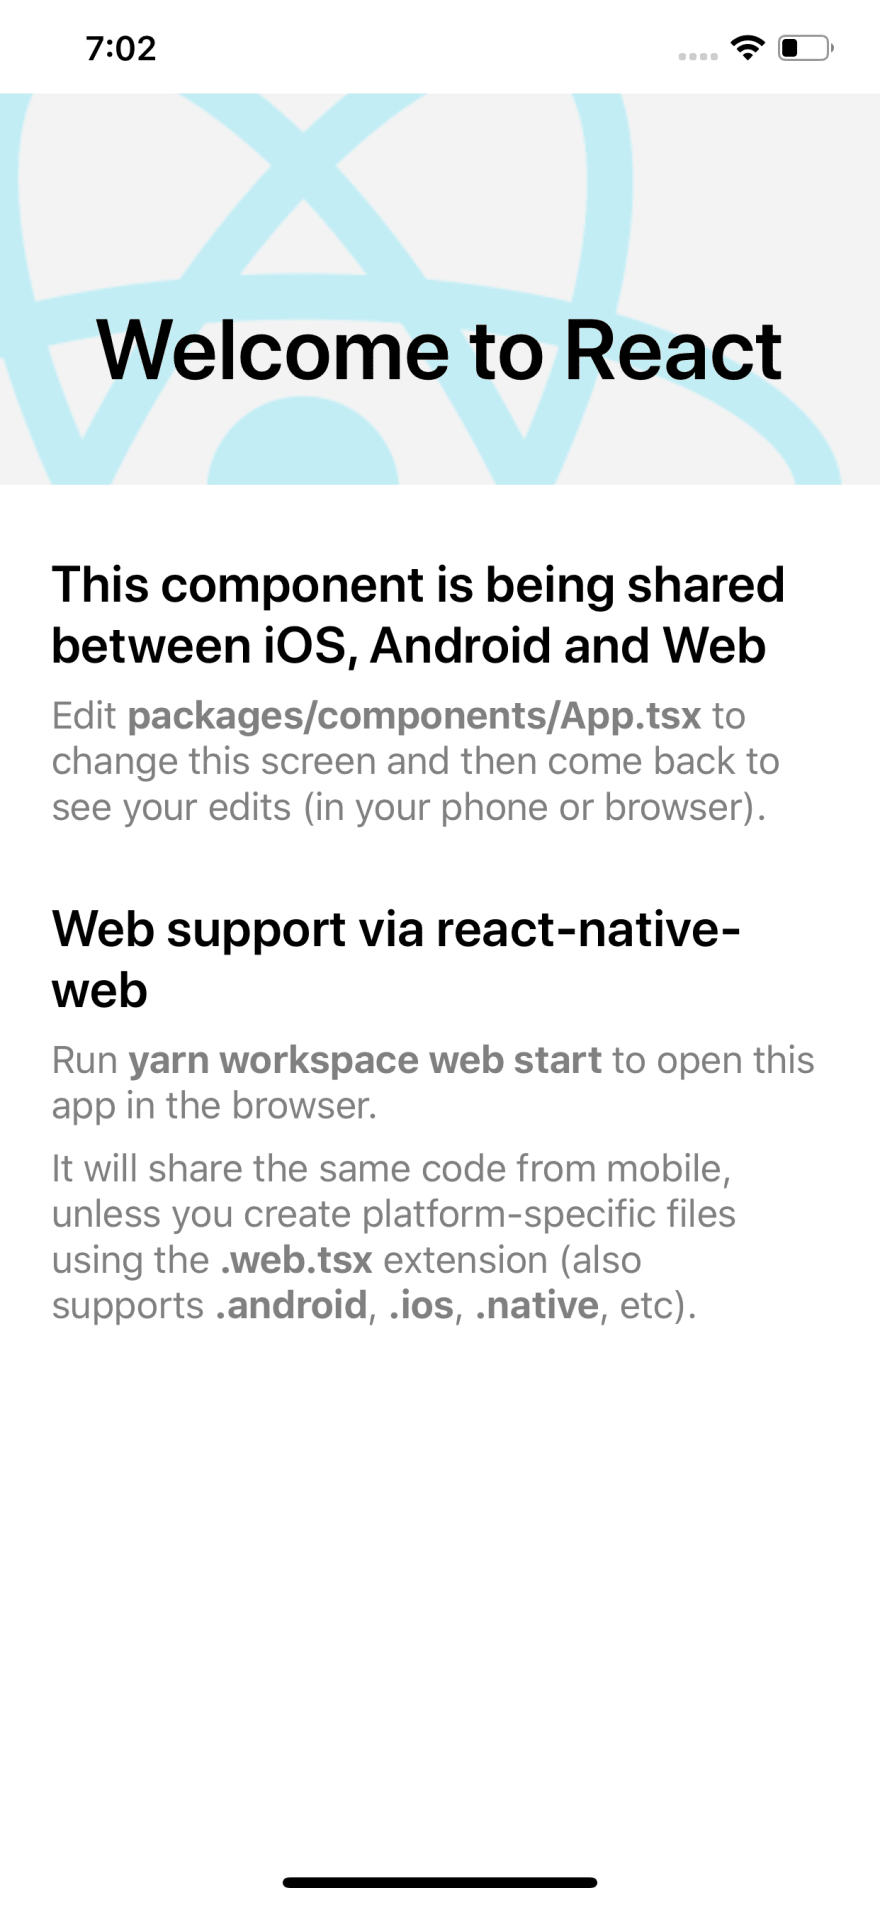 Tutorial: How to share code between iOS, Android & Web using